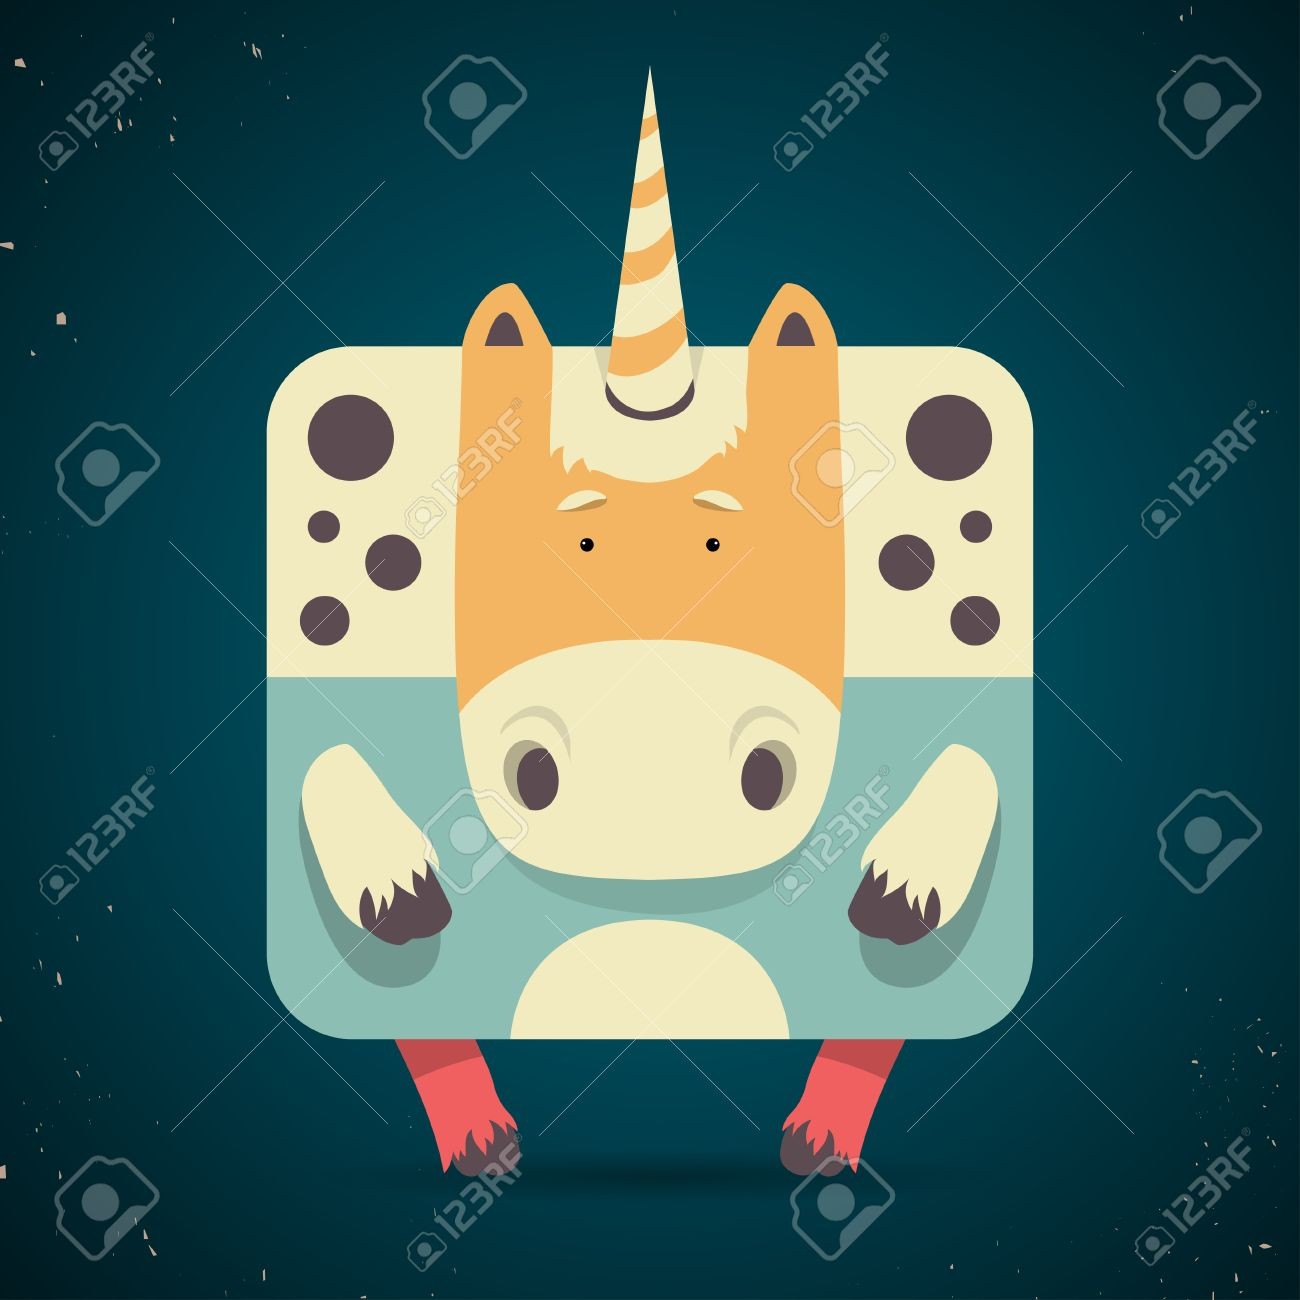 Cartoon illustration of a cute little mythical magic unicorn with a spiral horn and square body symbolic of virginity, chastity and purity Stock Vector - 25120184